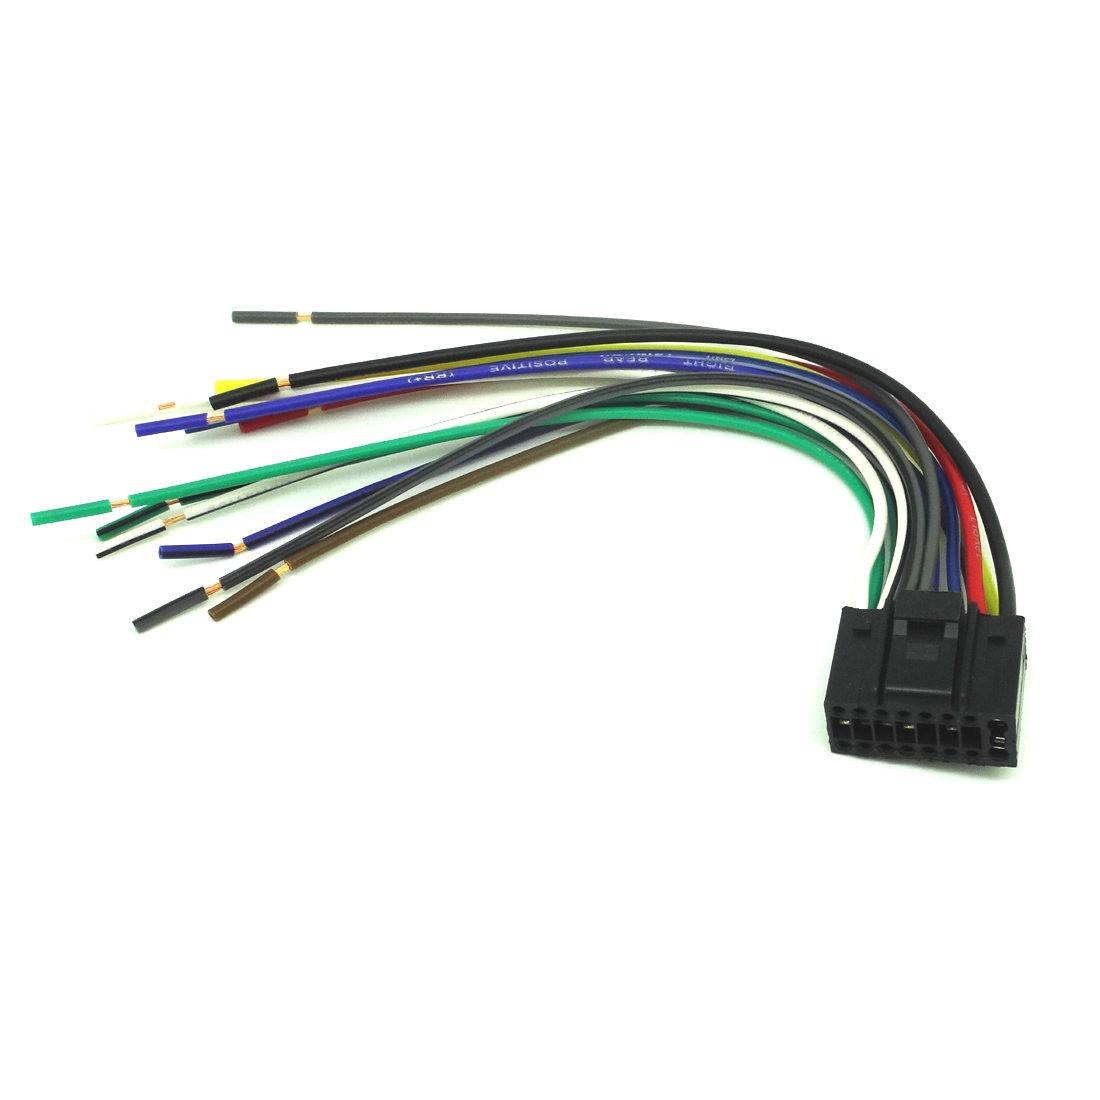 player 16 pin RADIO CAR AUDIO STEREO WIRE HARNESS for ... on kenwood mp205 manual, kenwood kdc 255, kenwood vr 205 manual,